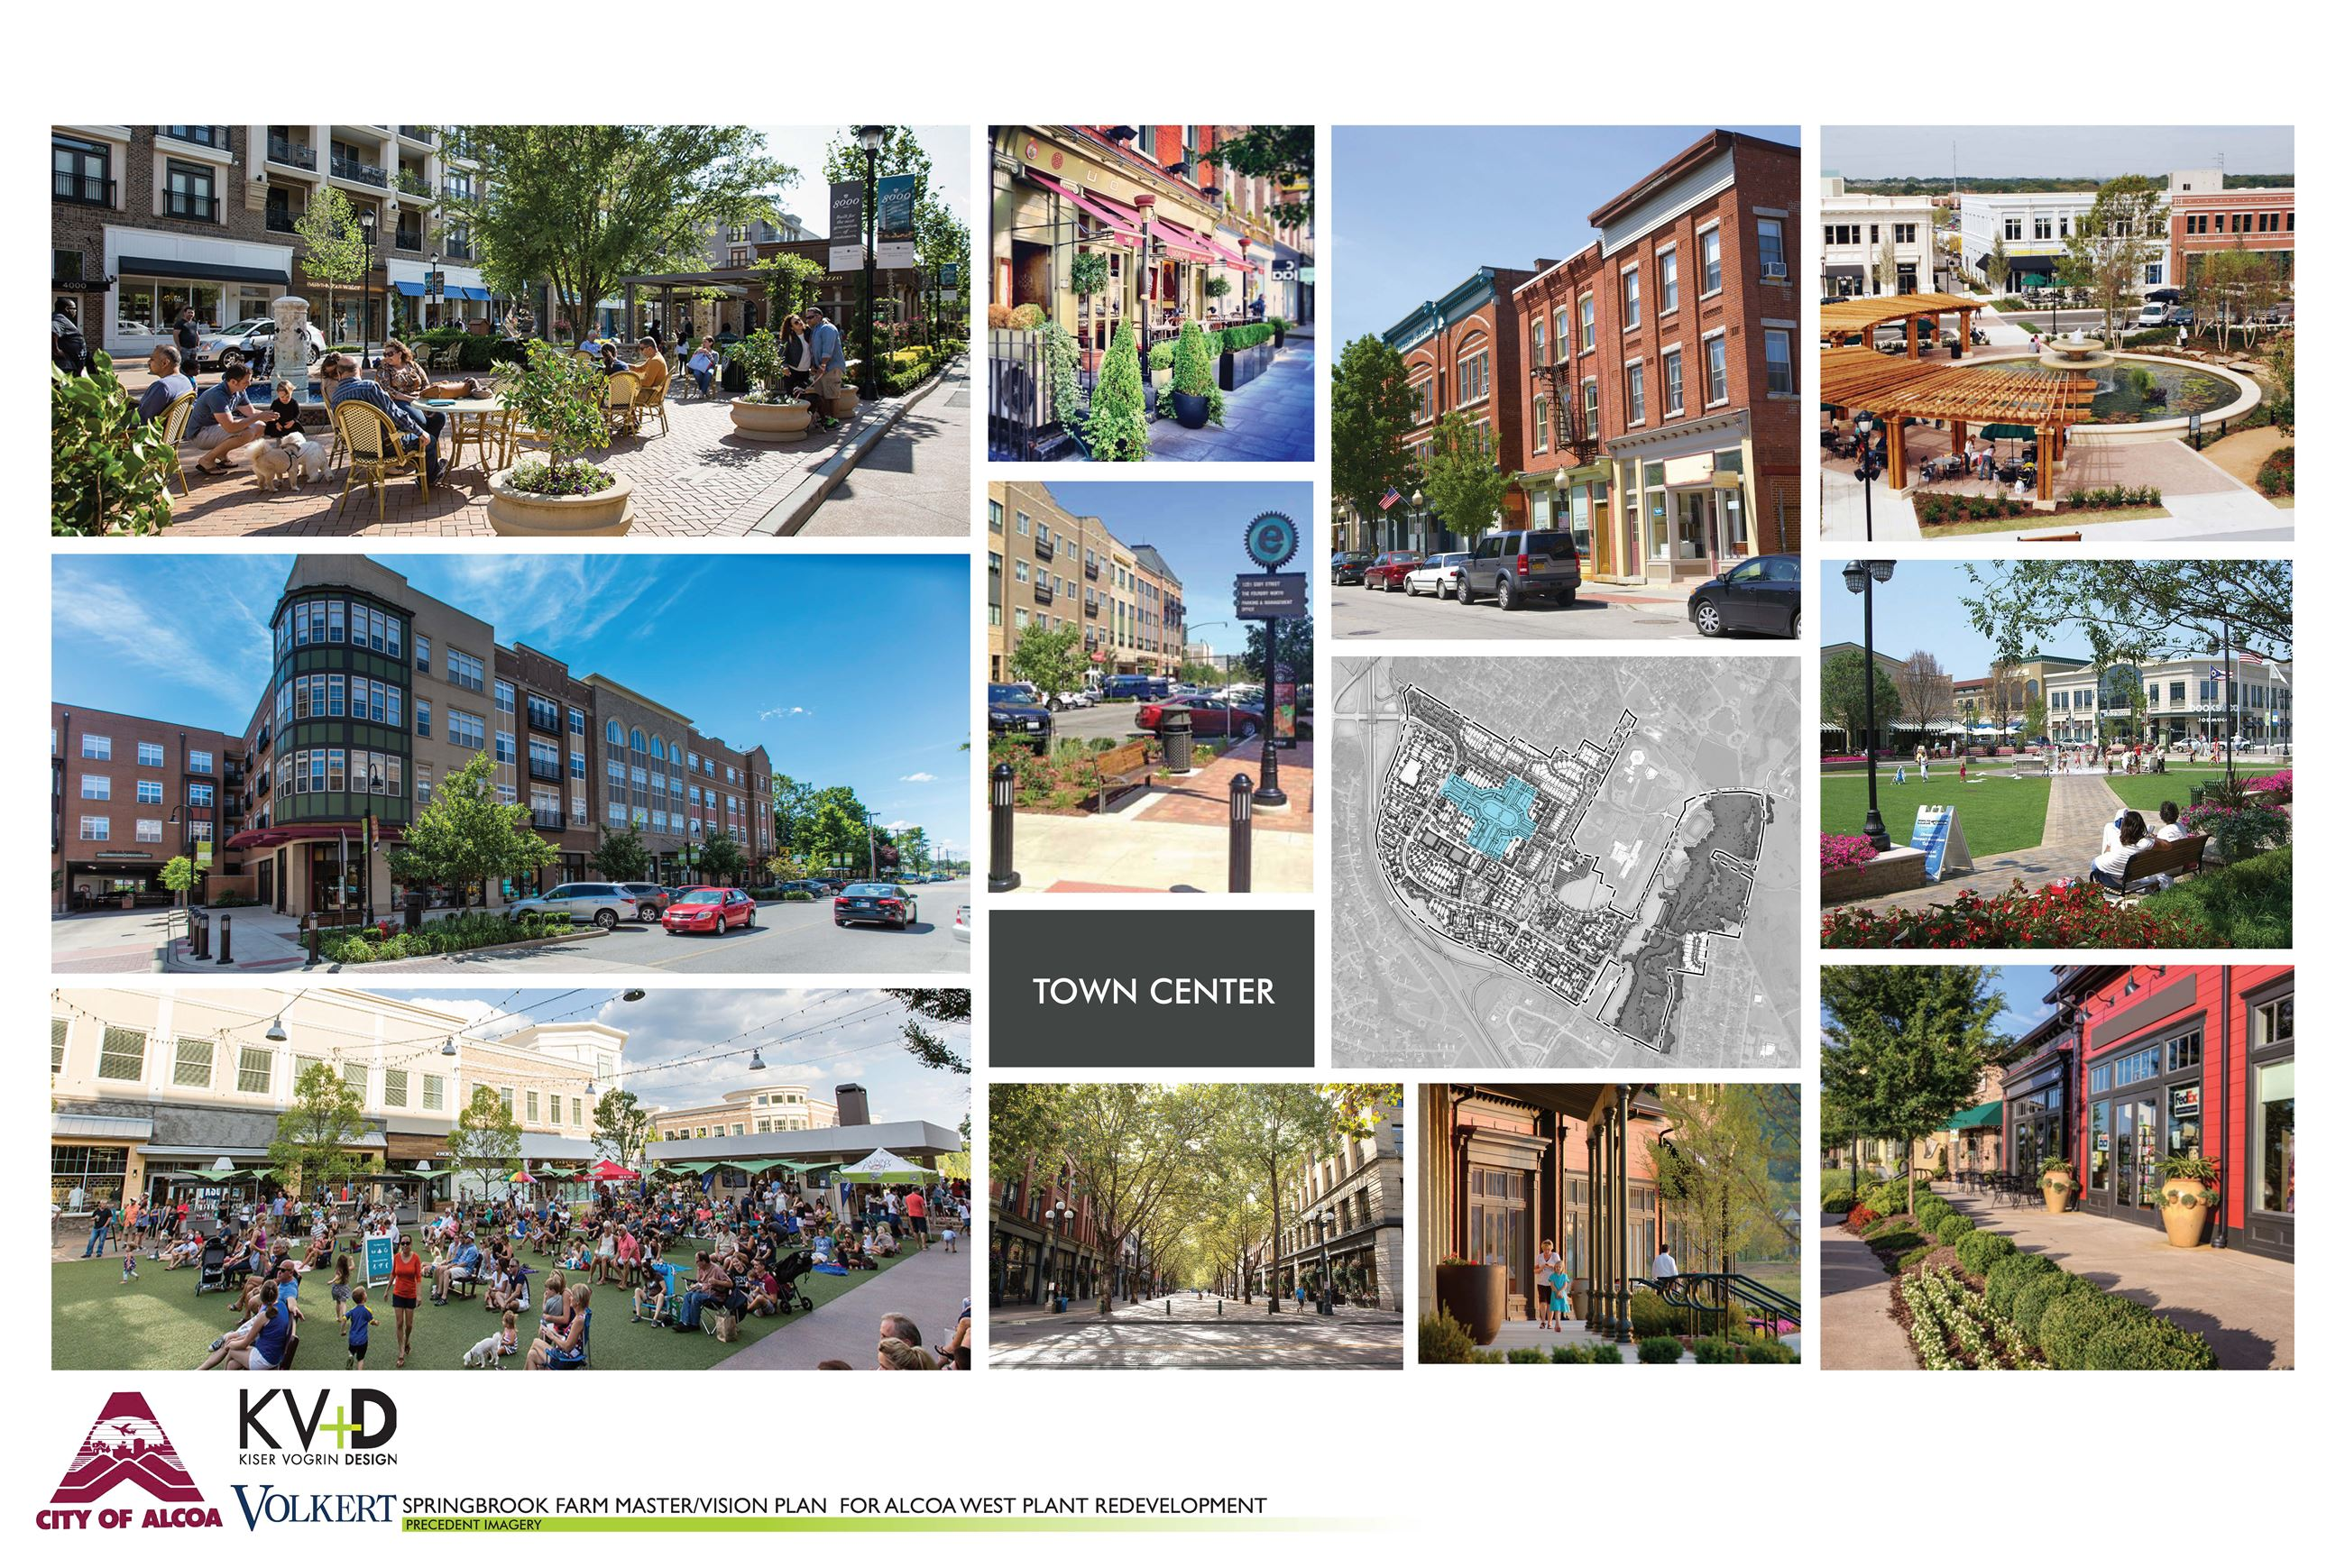 Springbrook Precedent Imagery - website town center image only Opens in new window